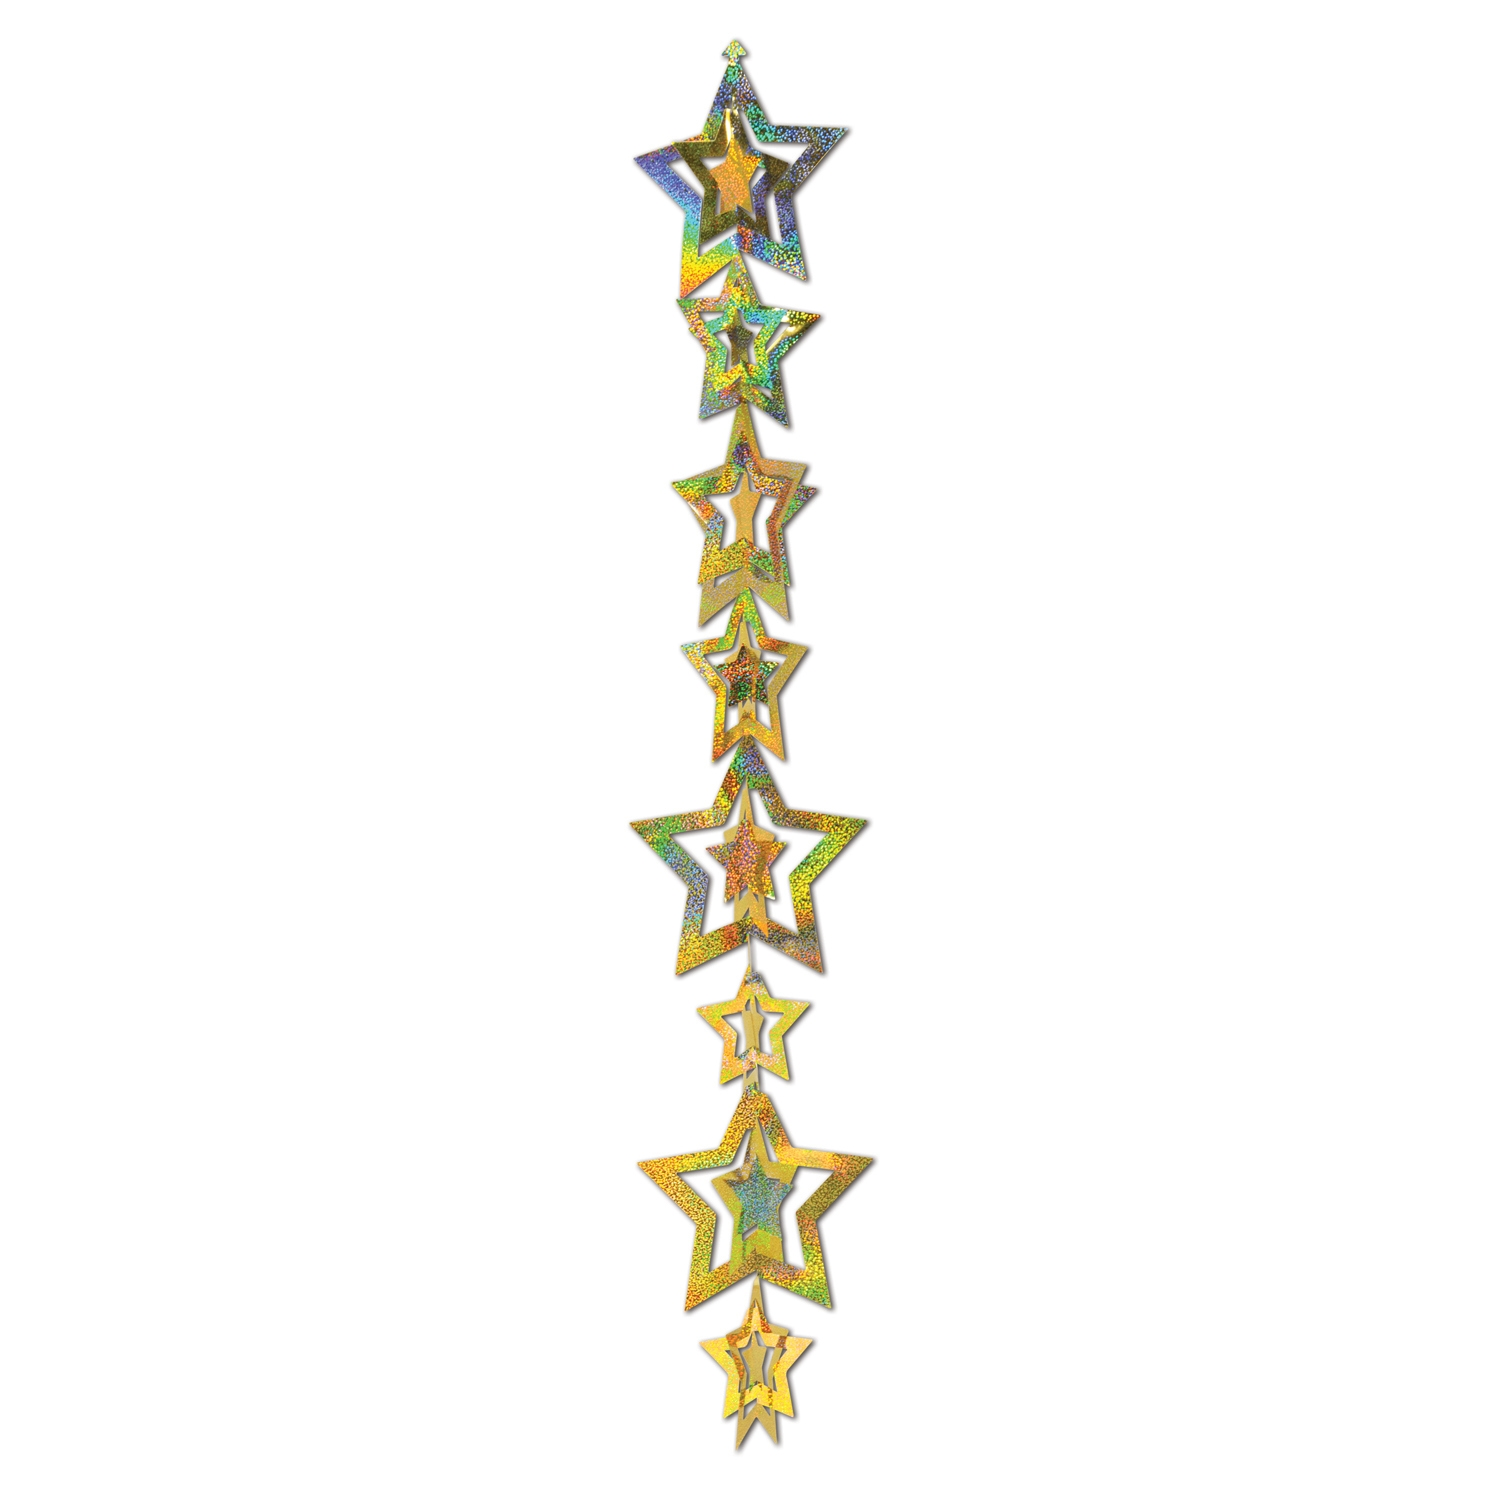 3-D Prismatic Star Gleam N Garland (Pack of 24) 3-D Prismatic Star Gleam N Garland, Star Garland, Star Decorations, Party Decorations, Decorations, New Years Eve Decorations, New Year Decorations, New Years Eve